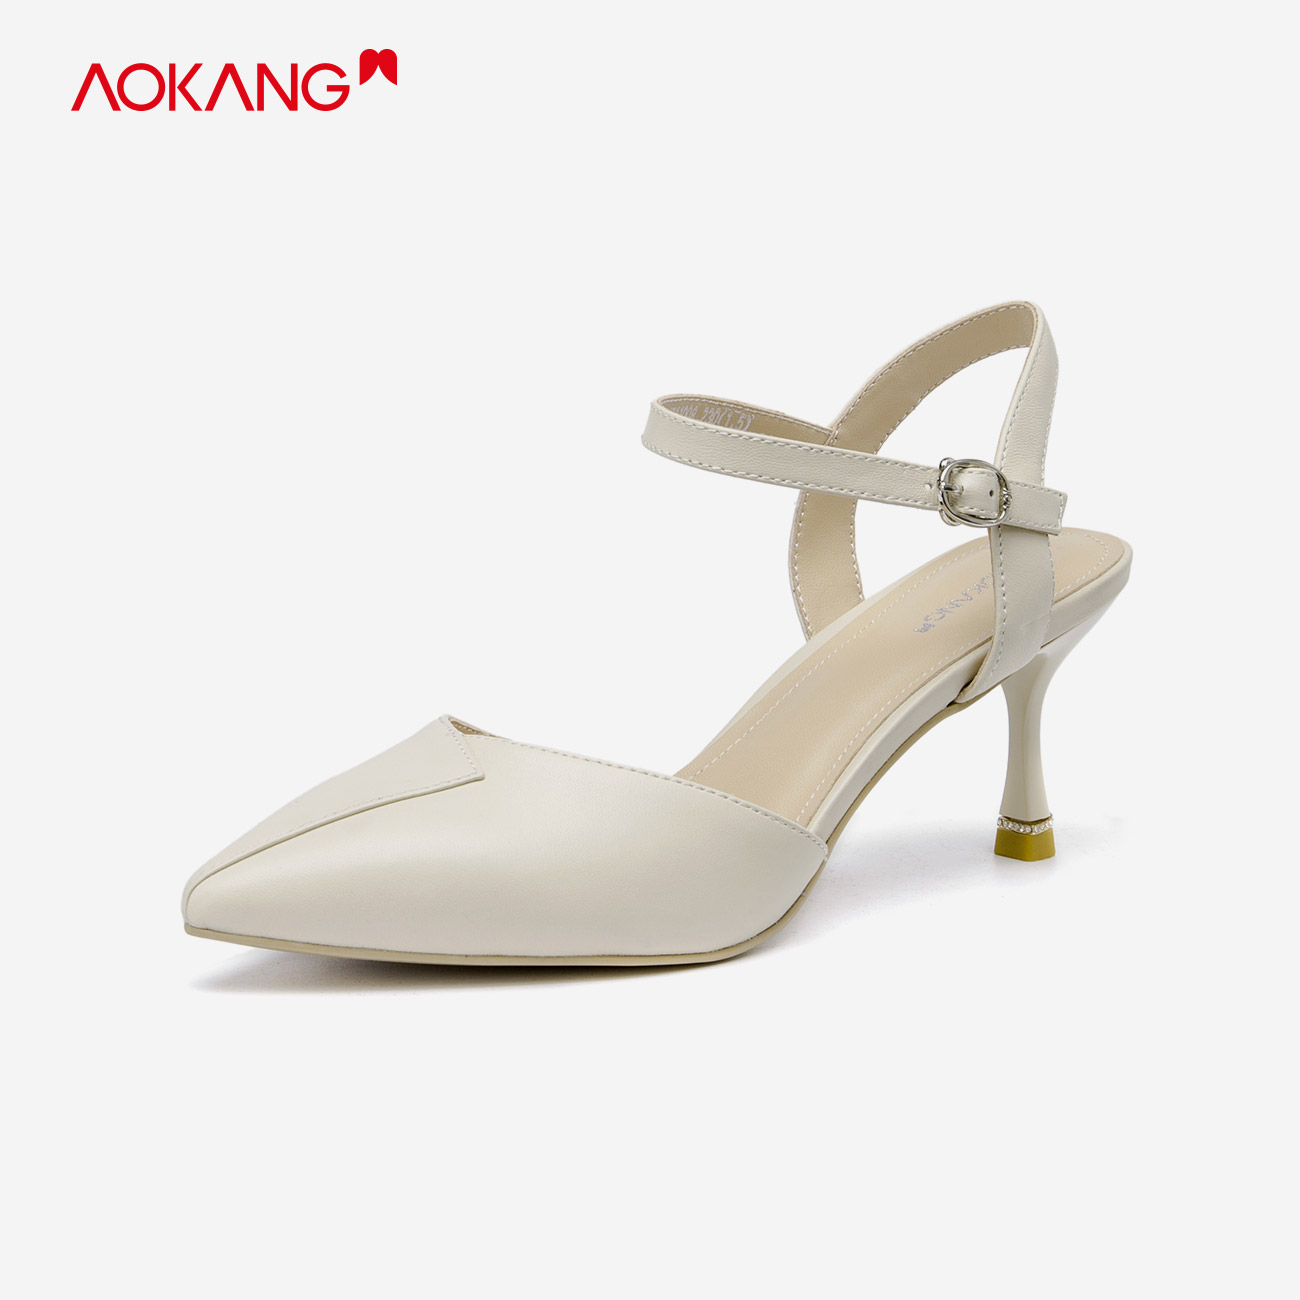 Aokang womens shoes 2021 spring new Baotou sandals sheepskin middle heel one line belt commuter thin heel pointed shoes fashion